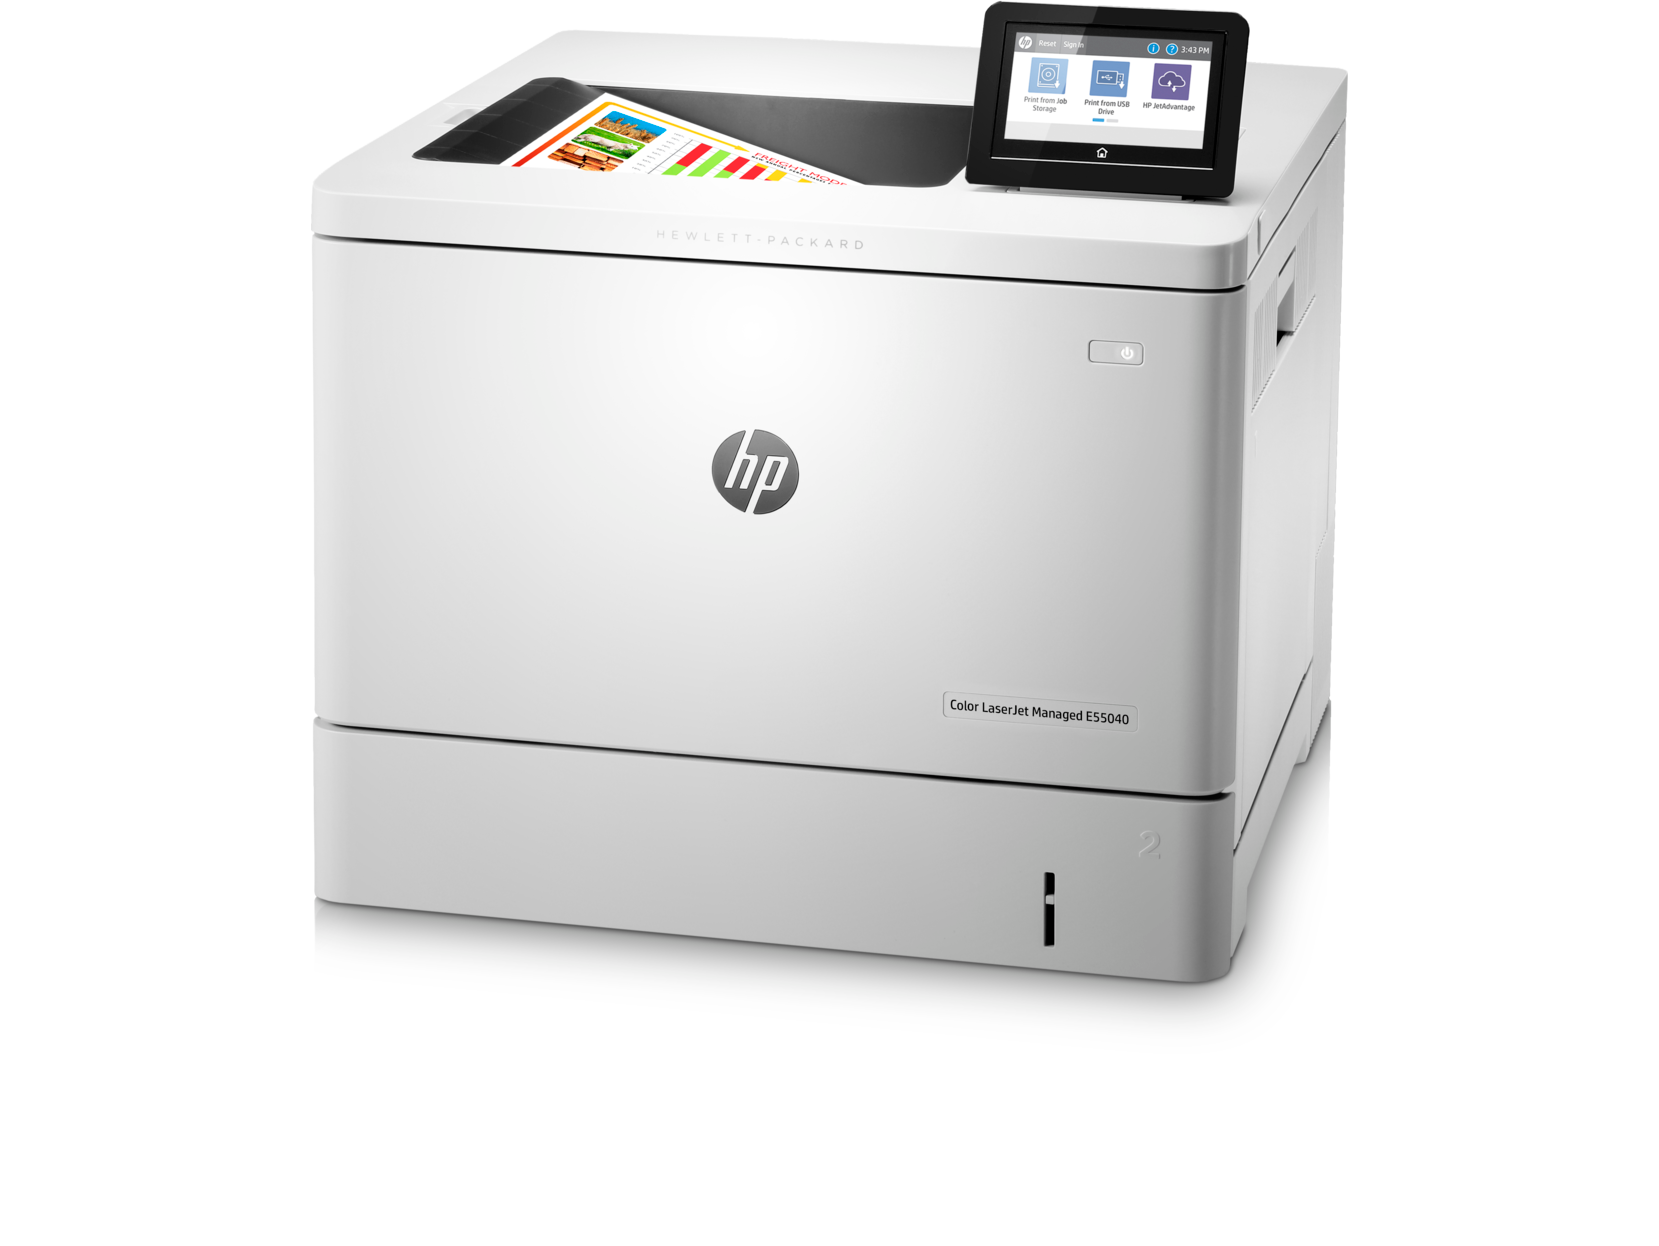 HP Color LaserJet Managed E55040dn